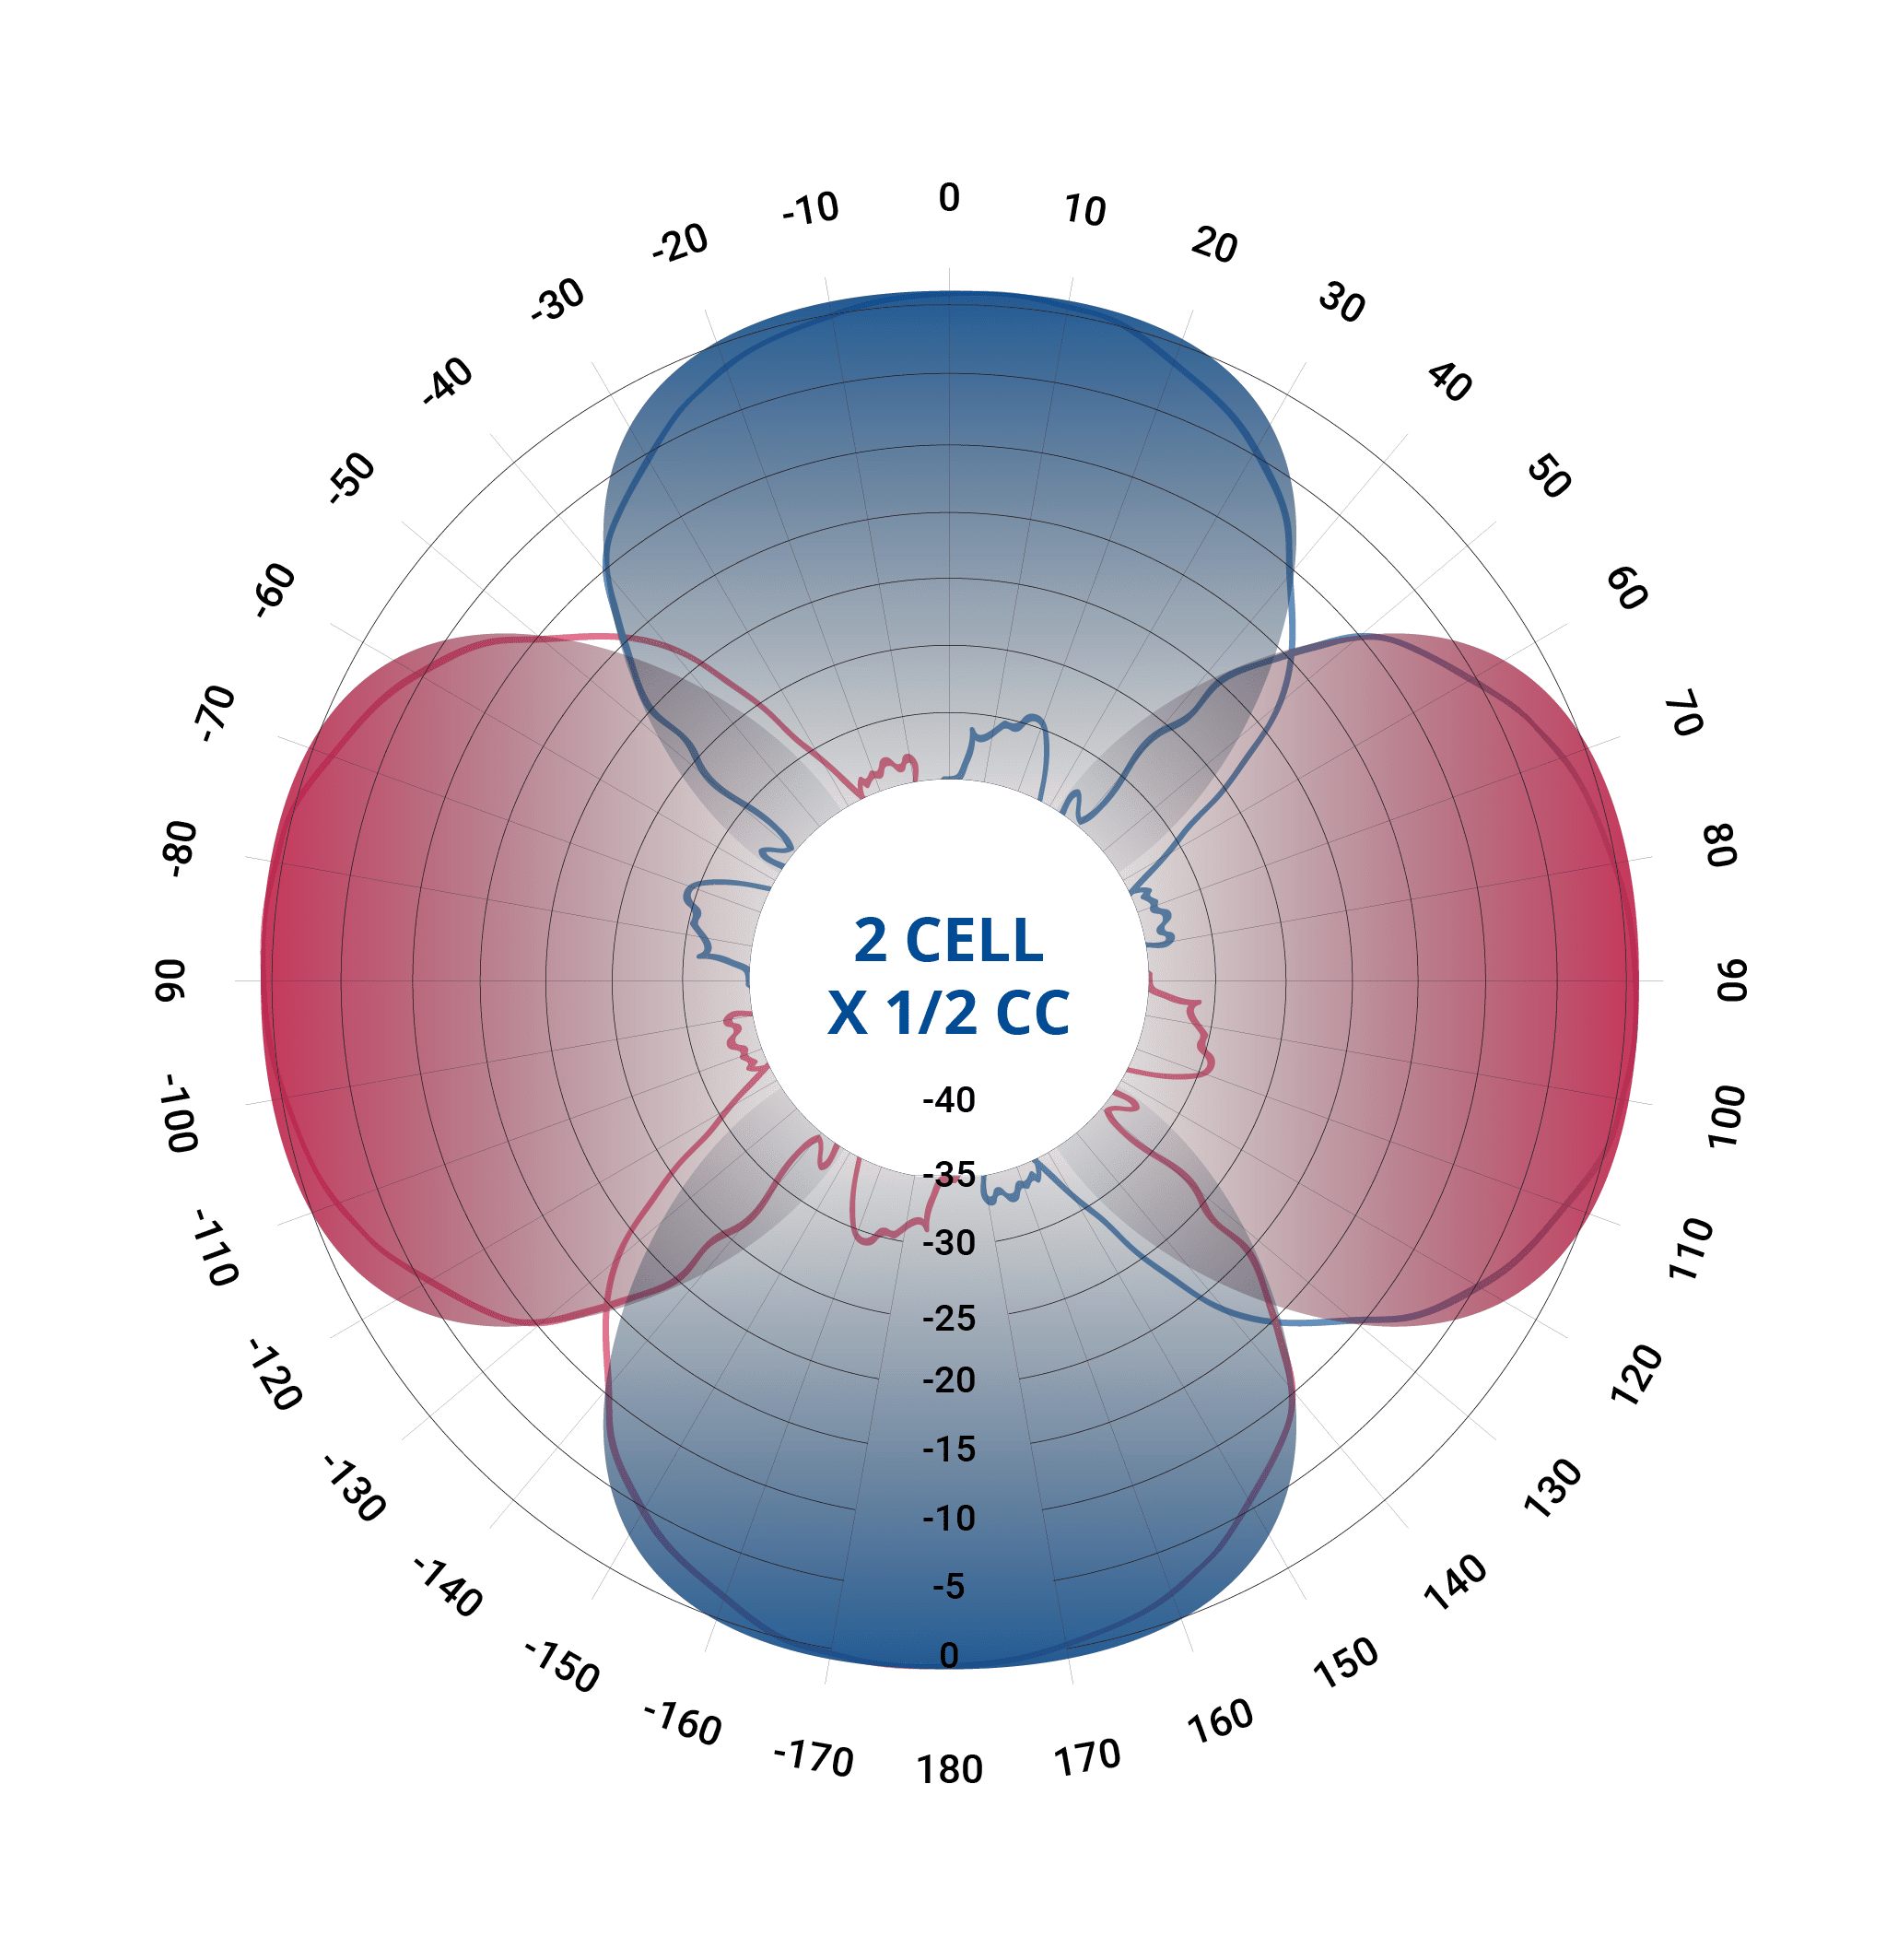 Blinq2celldiagram